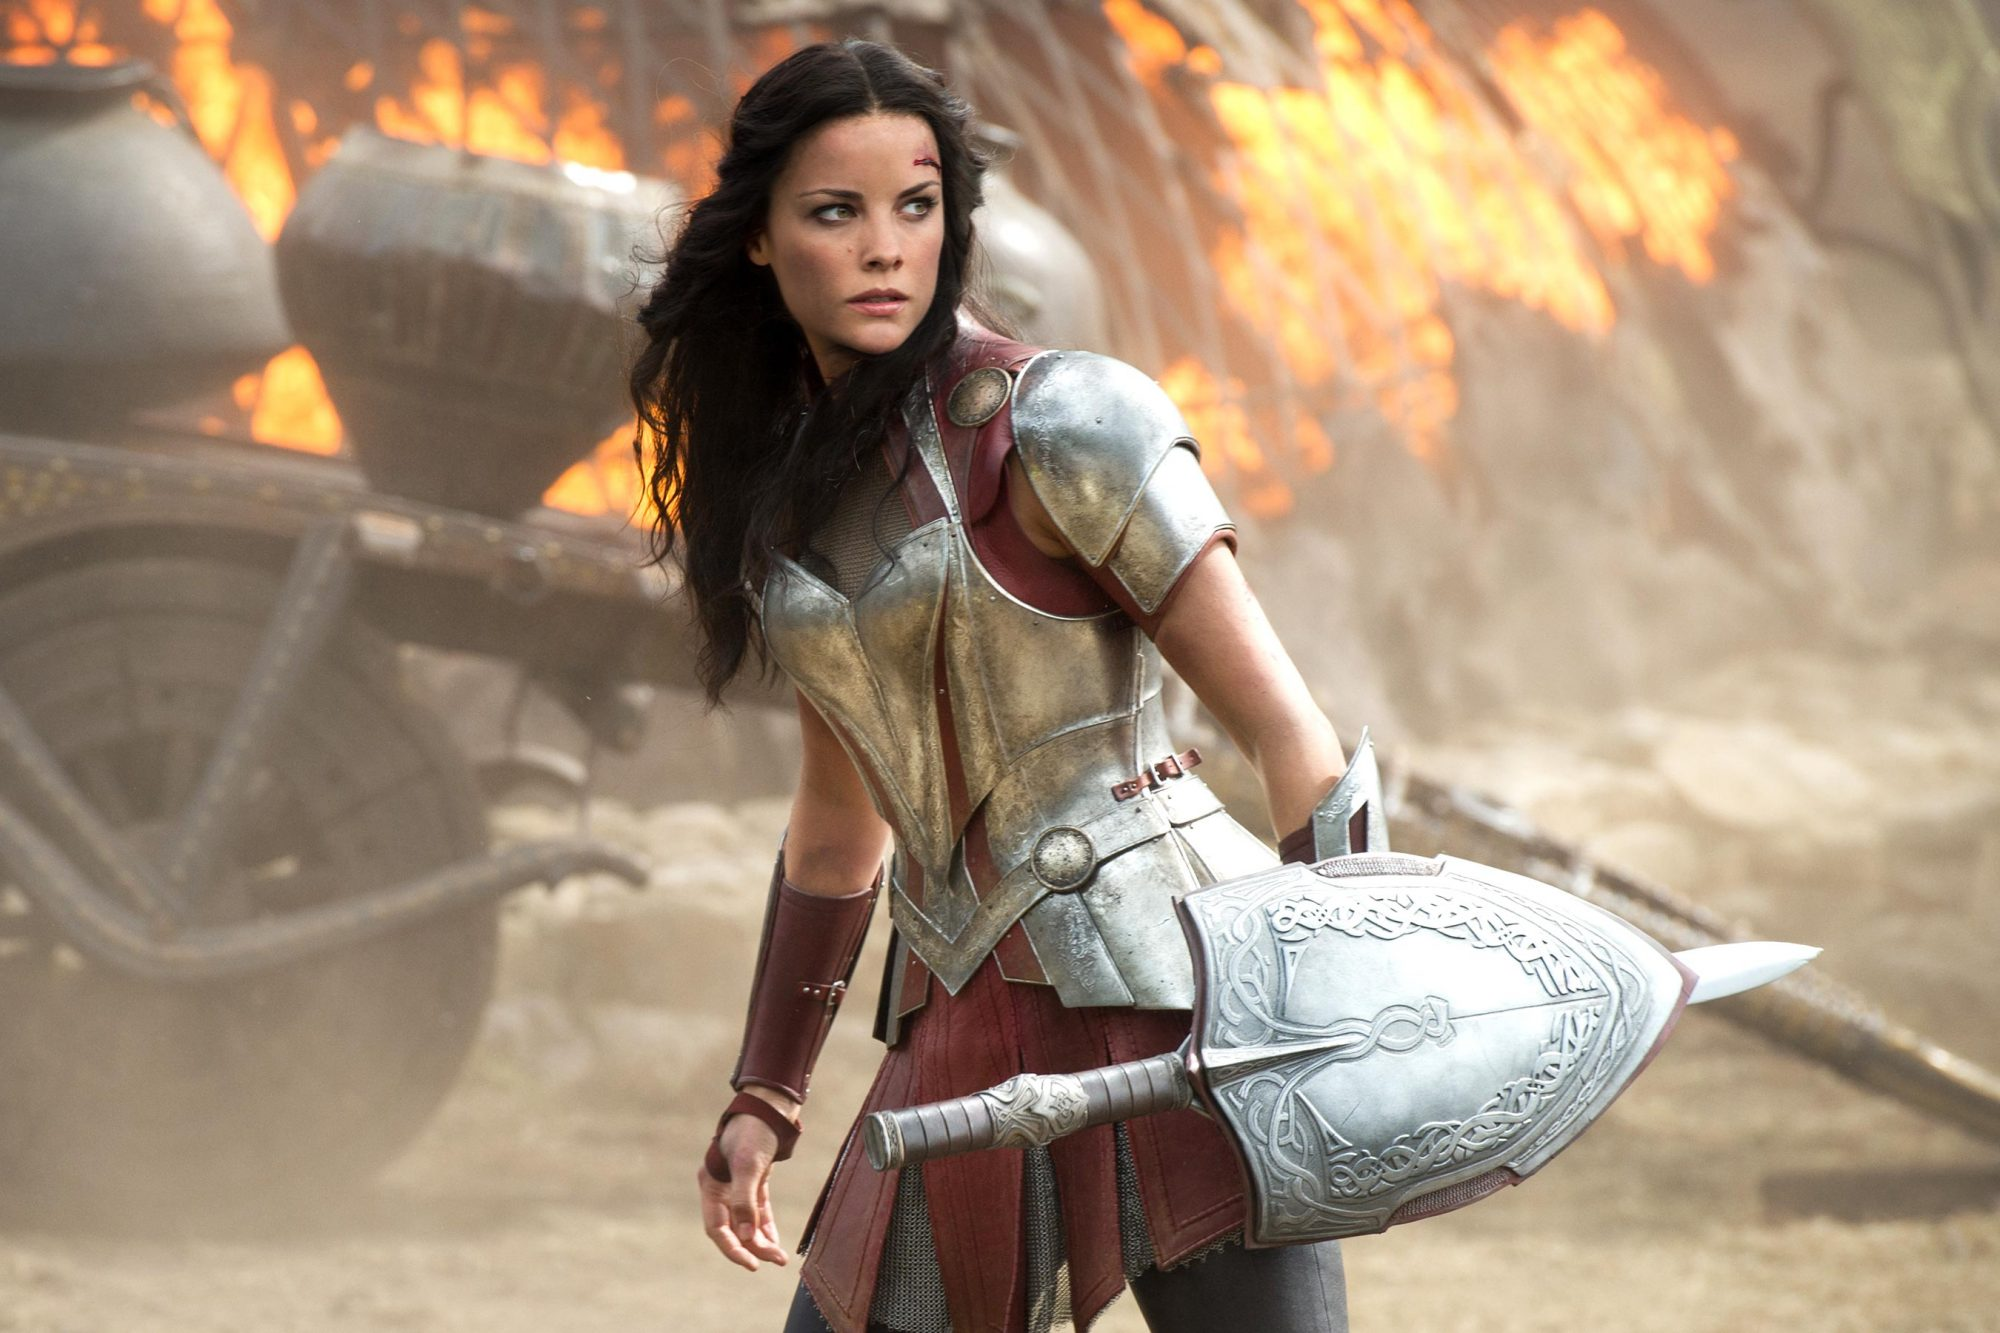 Thor: Ragnarok: Jaimie Alexander explains why Sif is missing | EW.com